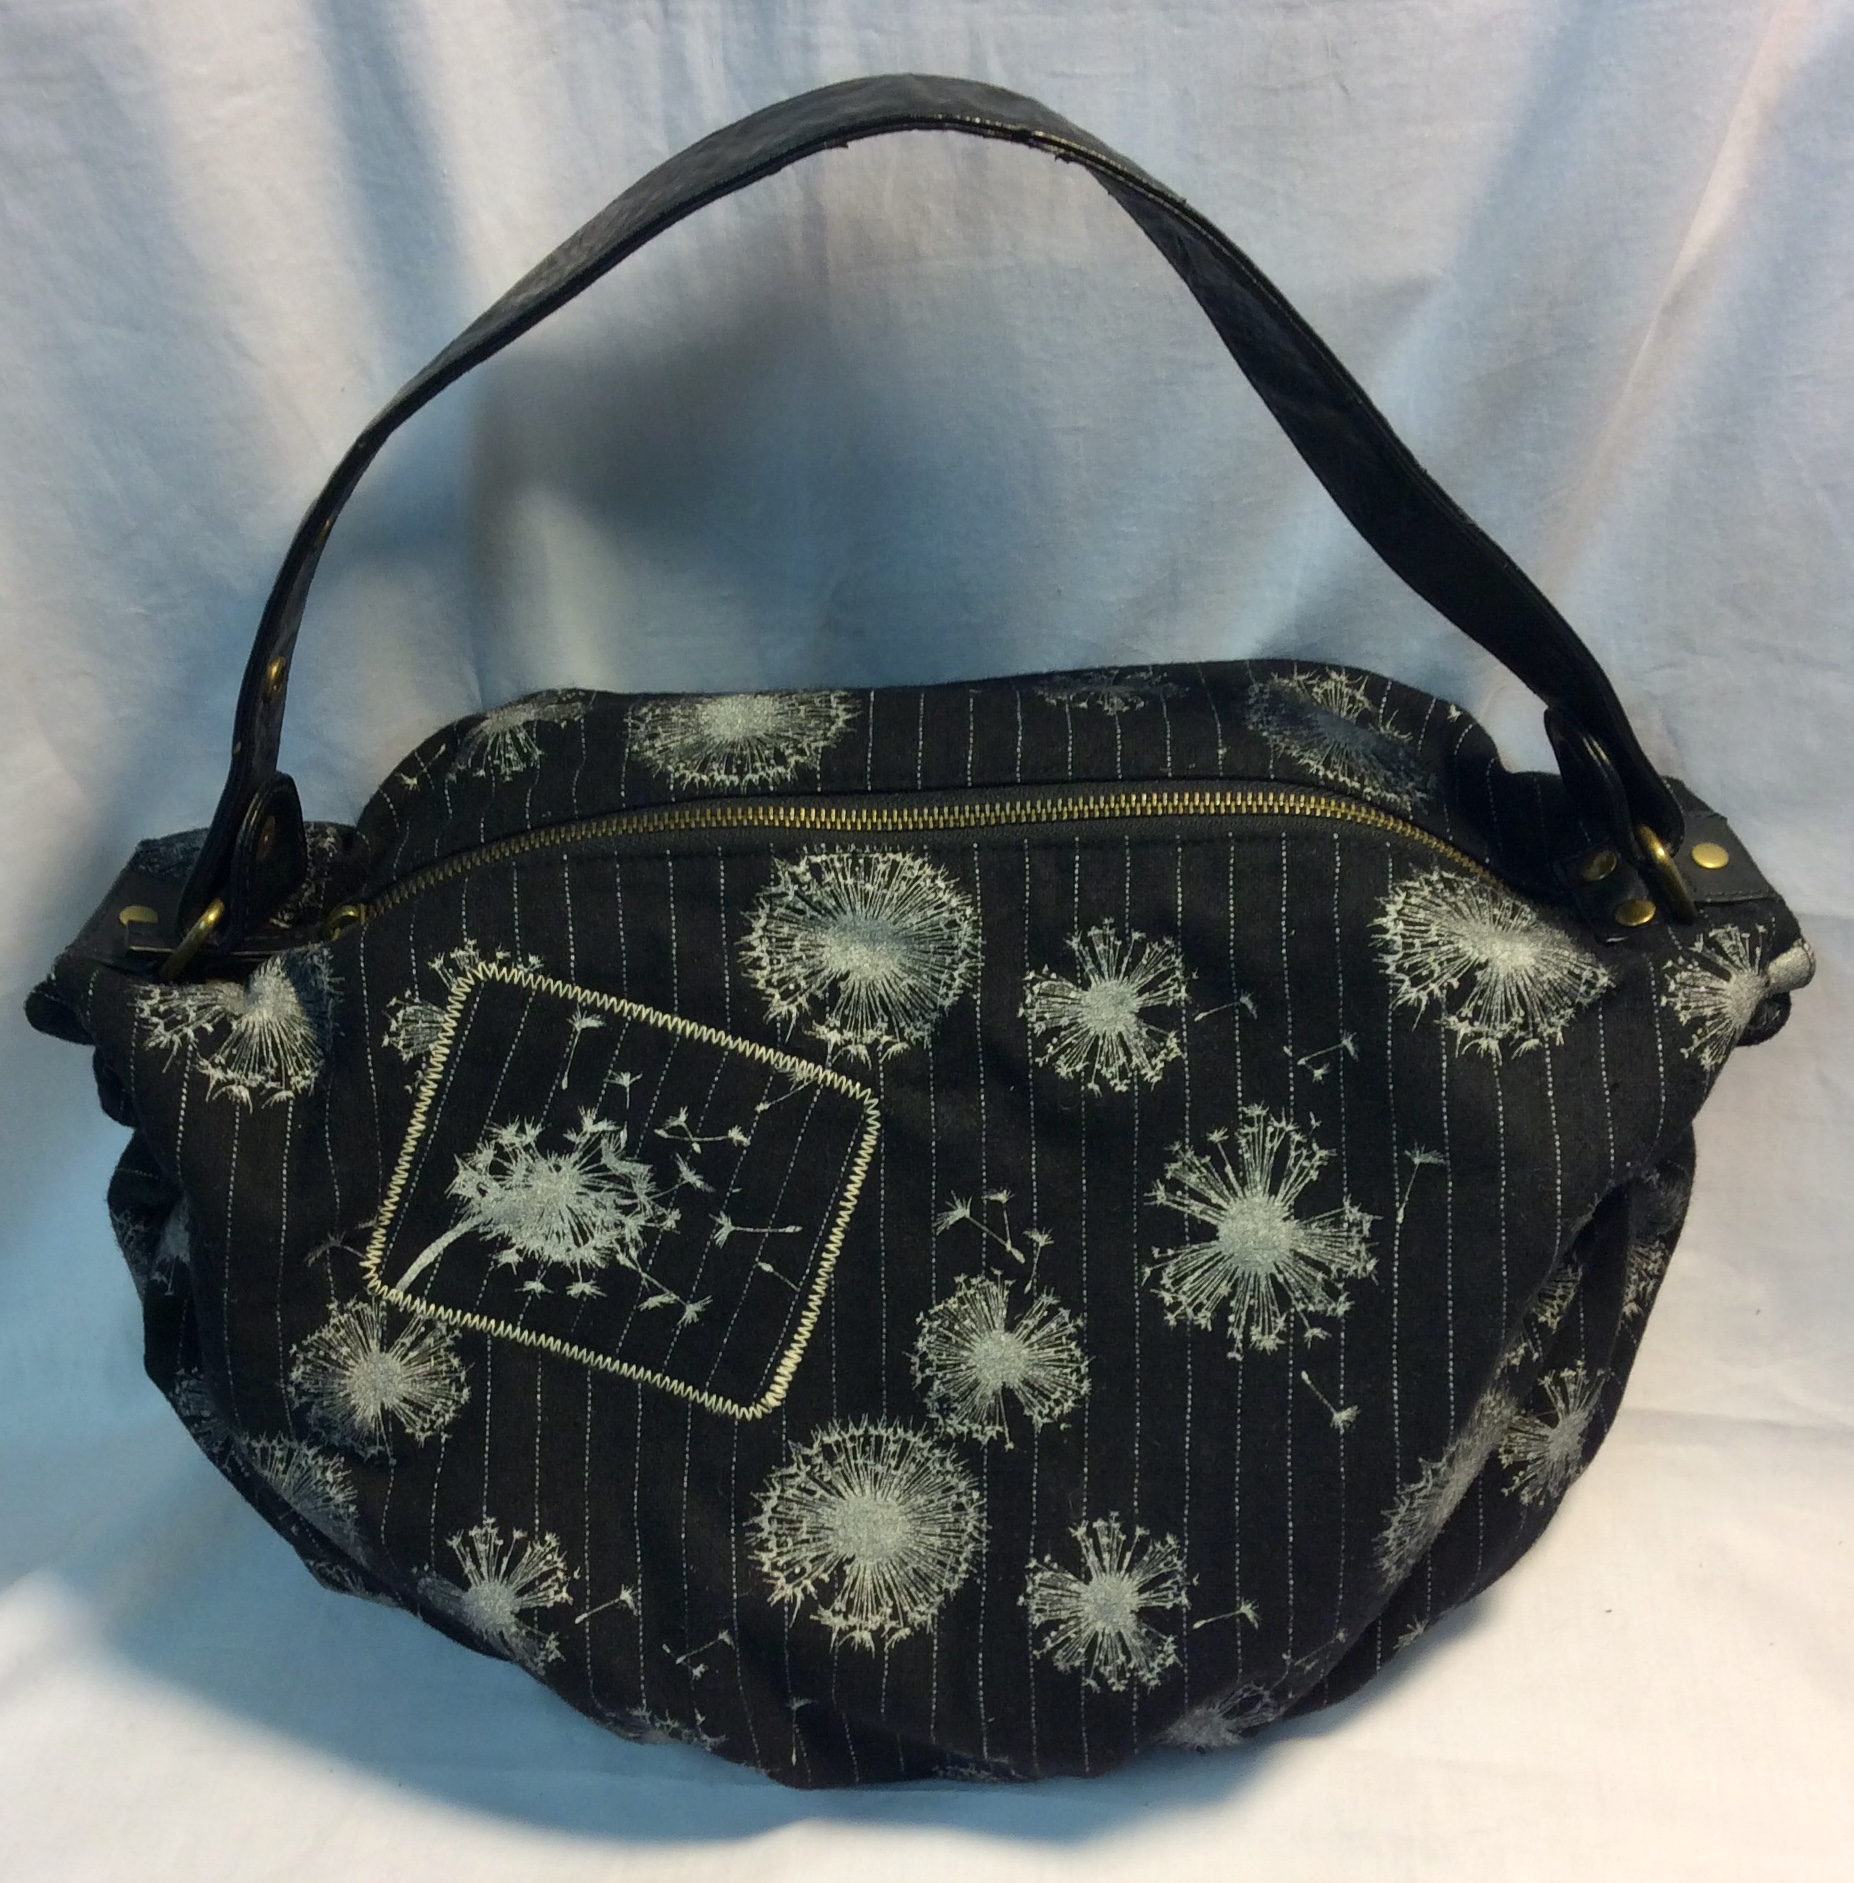 Black purse with white flowers